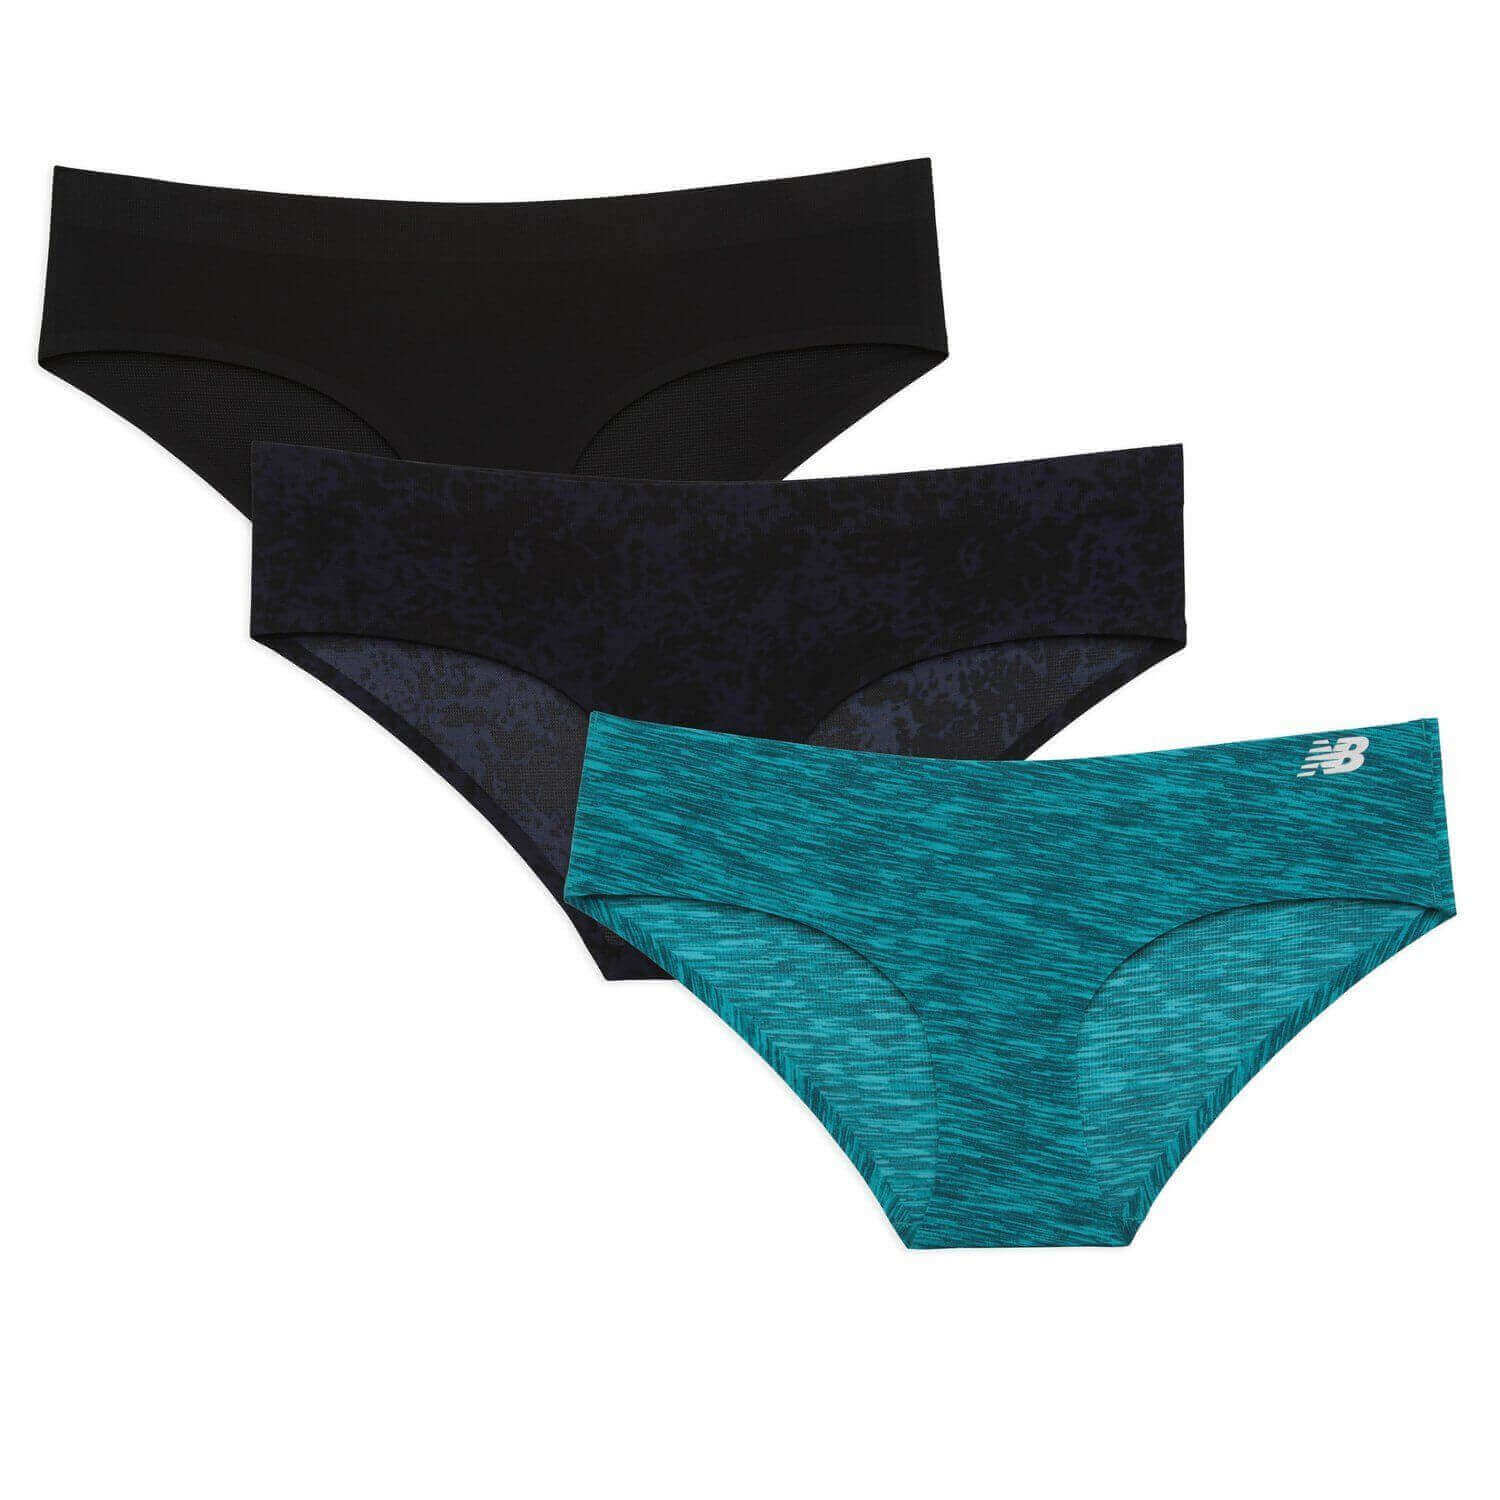 New Balance Breathe Hipster Panty for Women, Best Quick Dry Travel Underwear